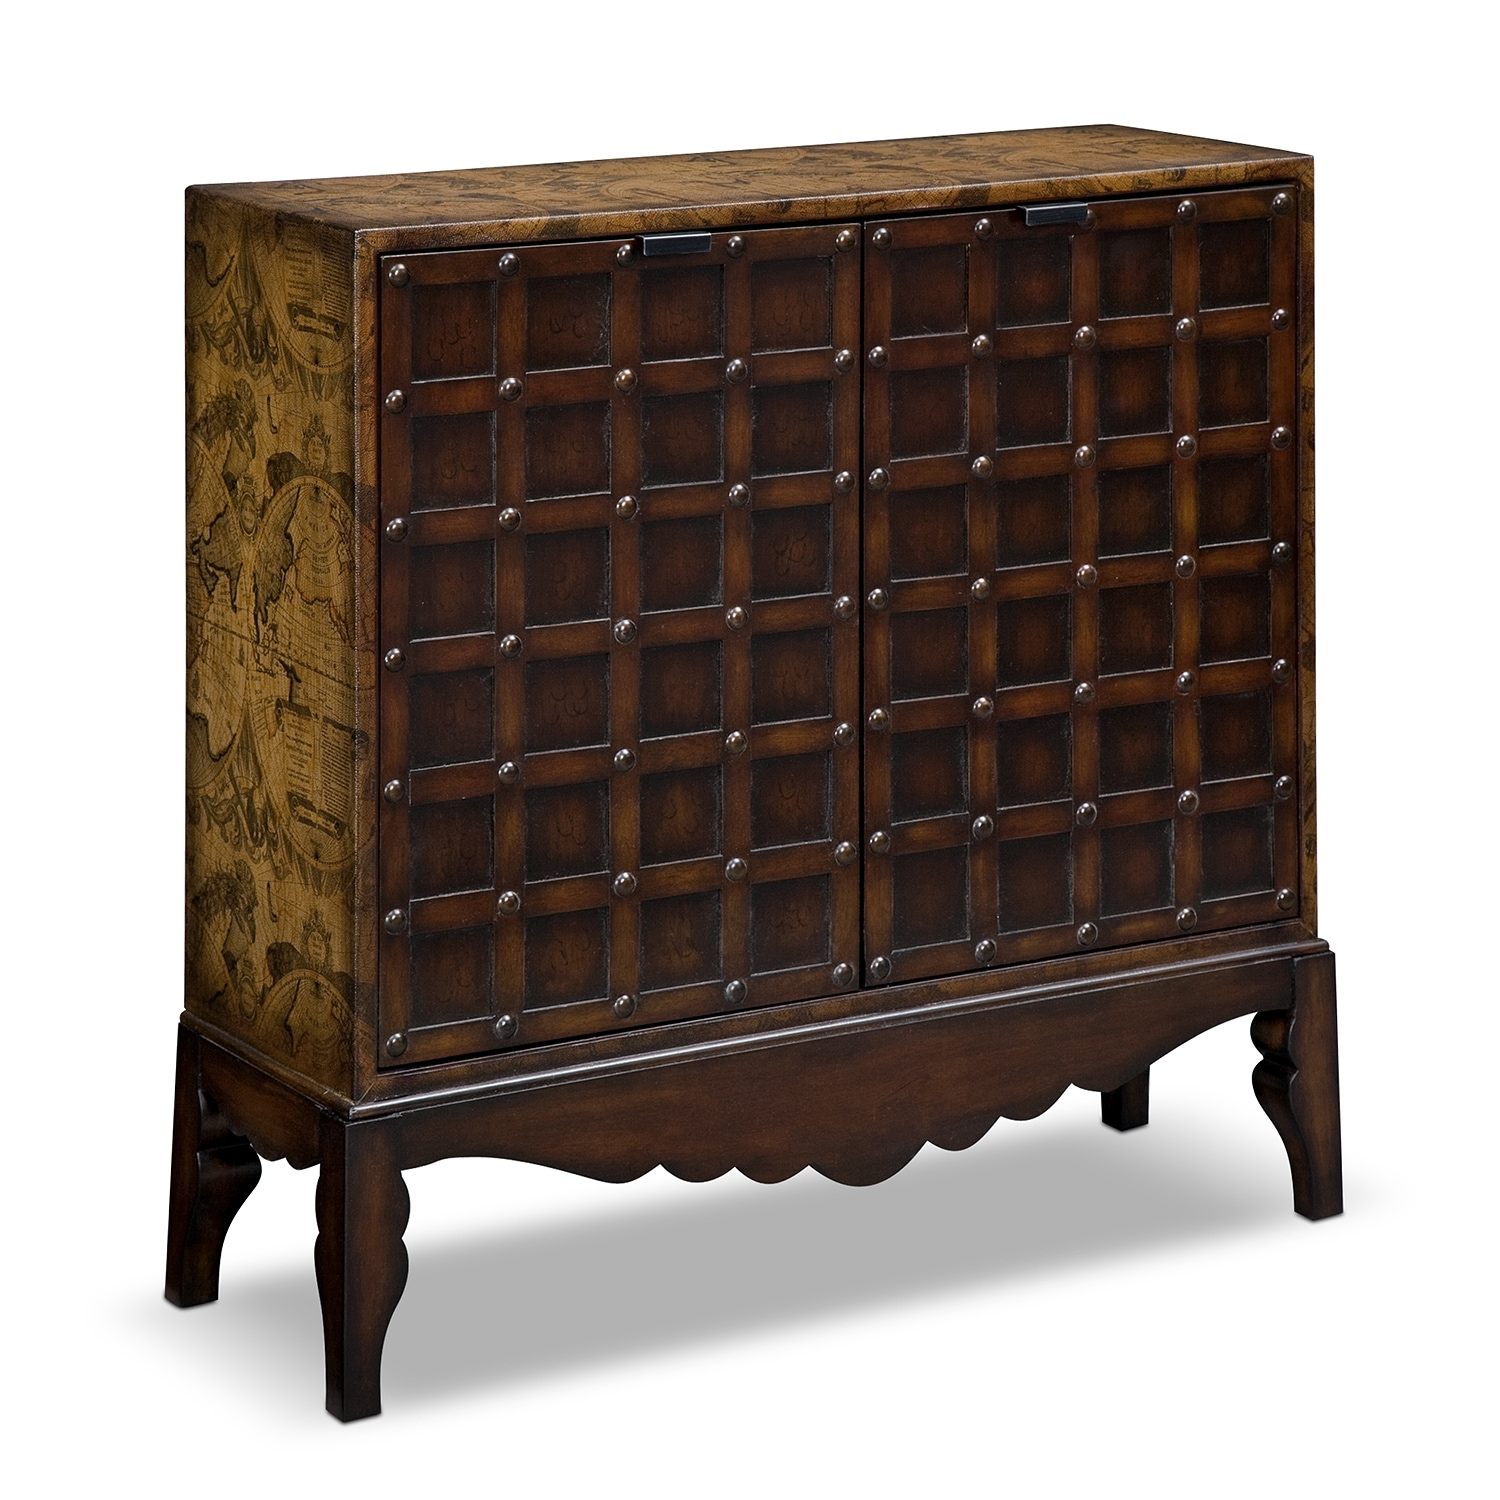 Oliver accent pieces accent chest value city furniture for Accent furniture